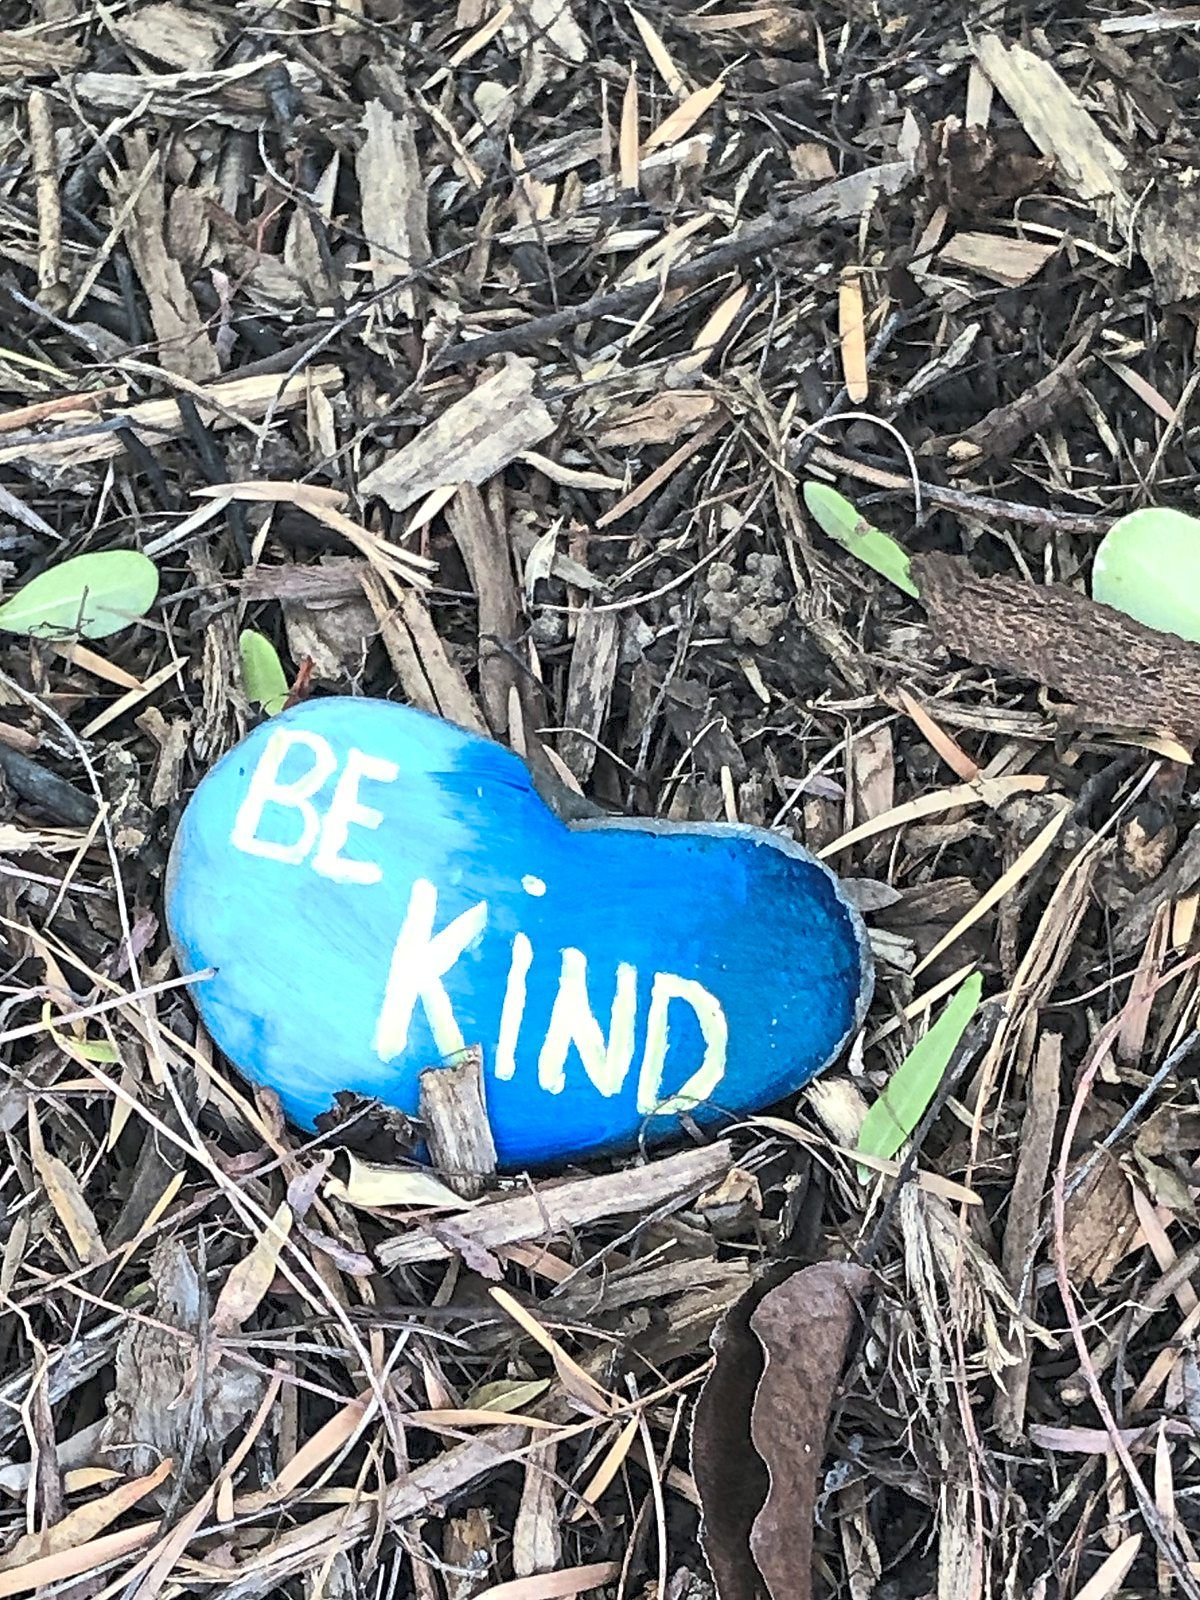 The rocks incorporate messages of hope and encouragement.